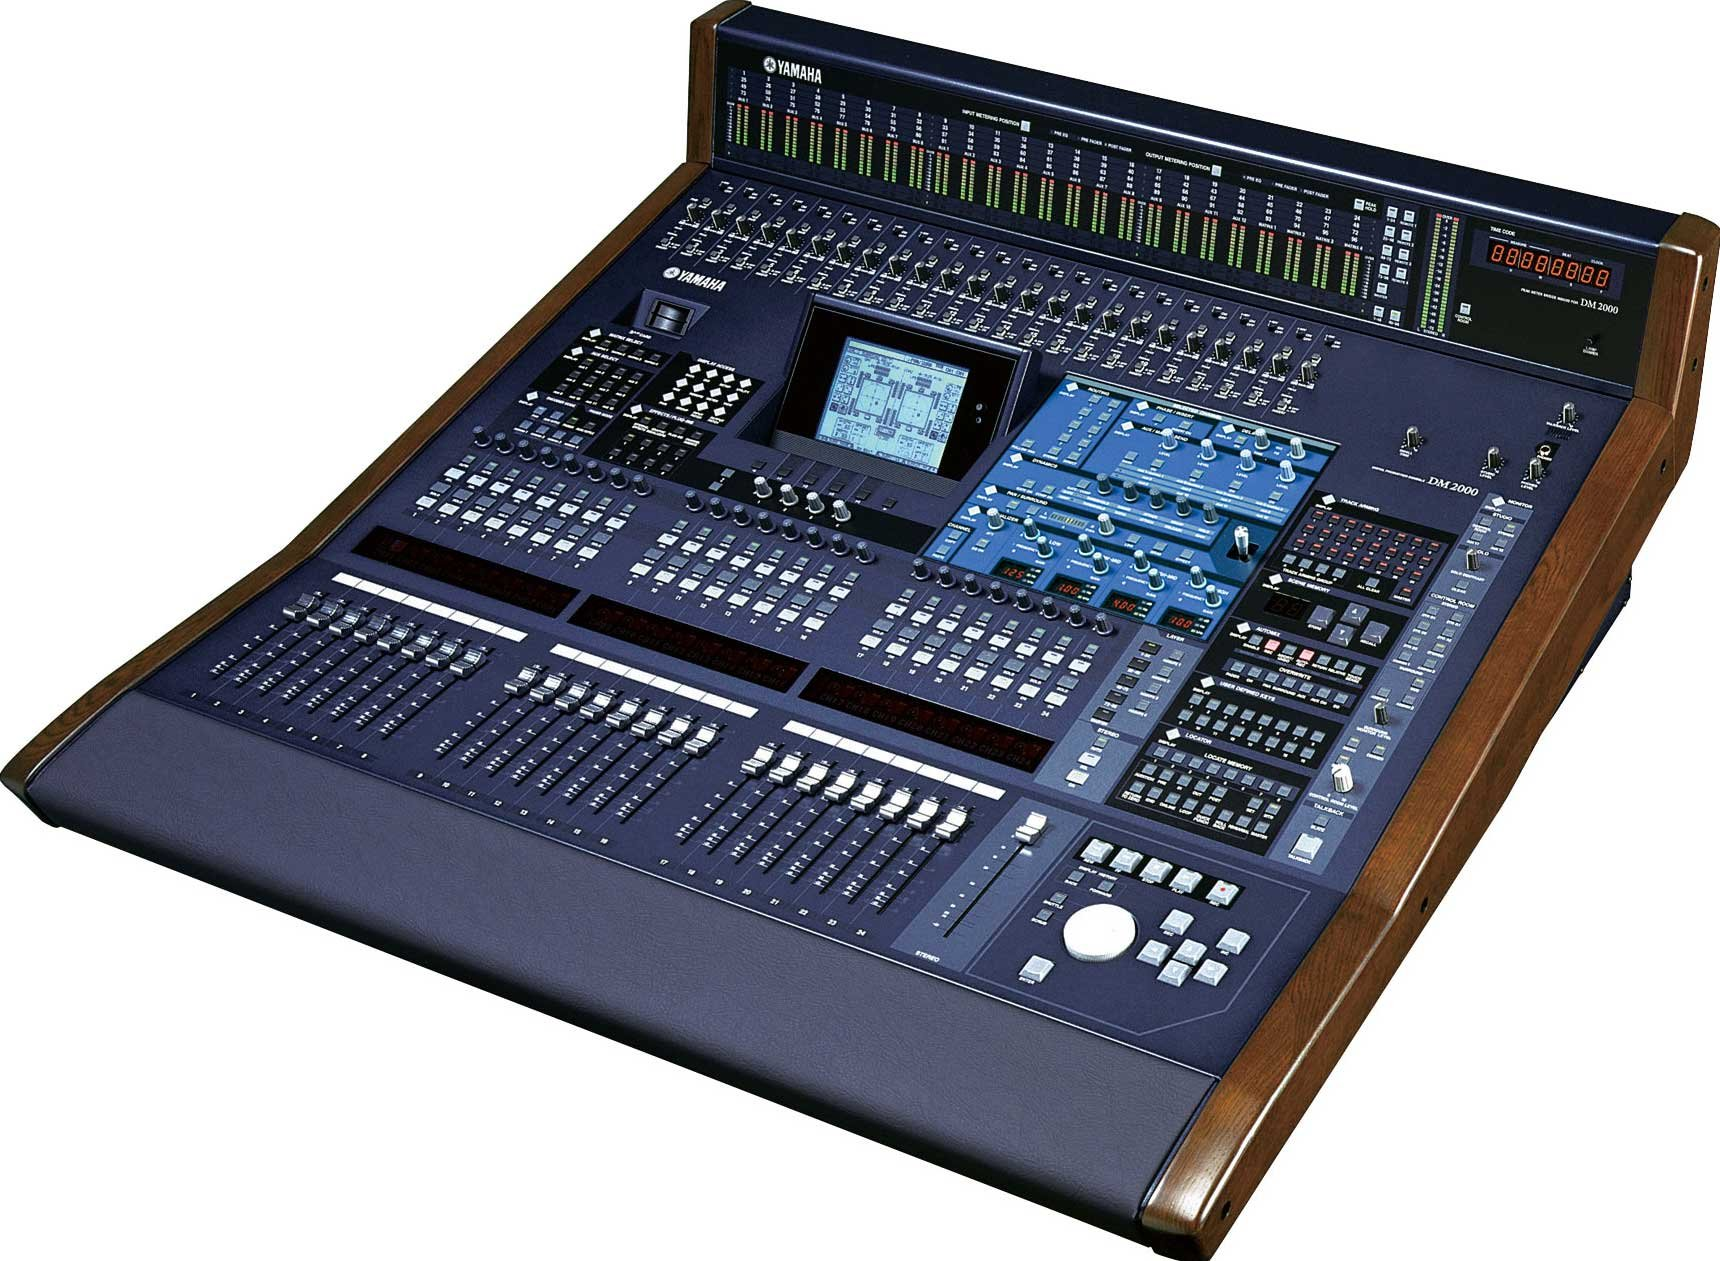 Yamaha DM2000VCM Digital Recording Console, 24 Faders, Verwion 2 featuring Pre-Installed Add-On Effects, DM2000V2-VCM DM2000V2-VCM